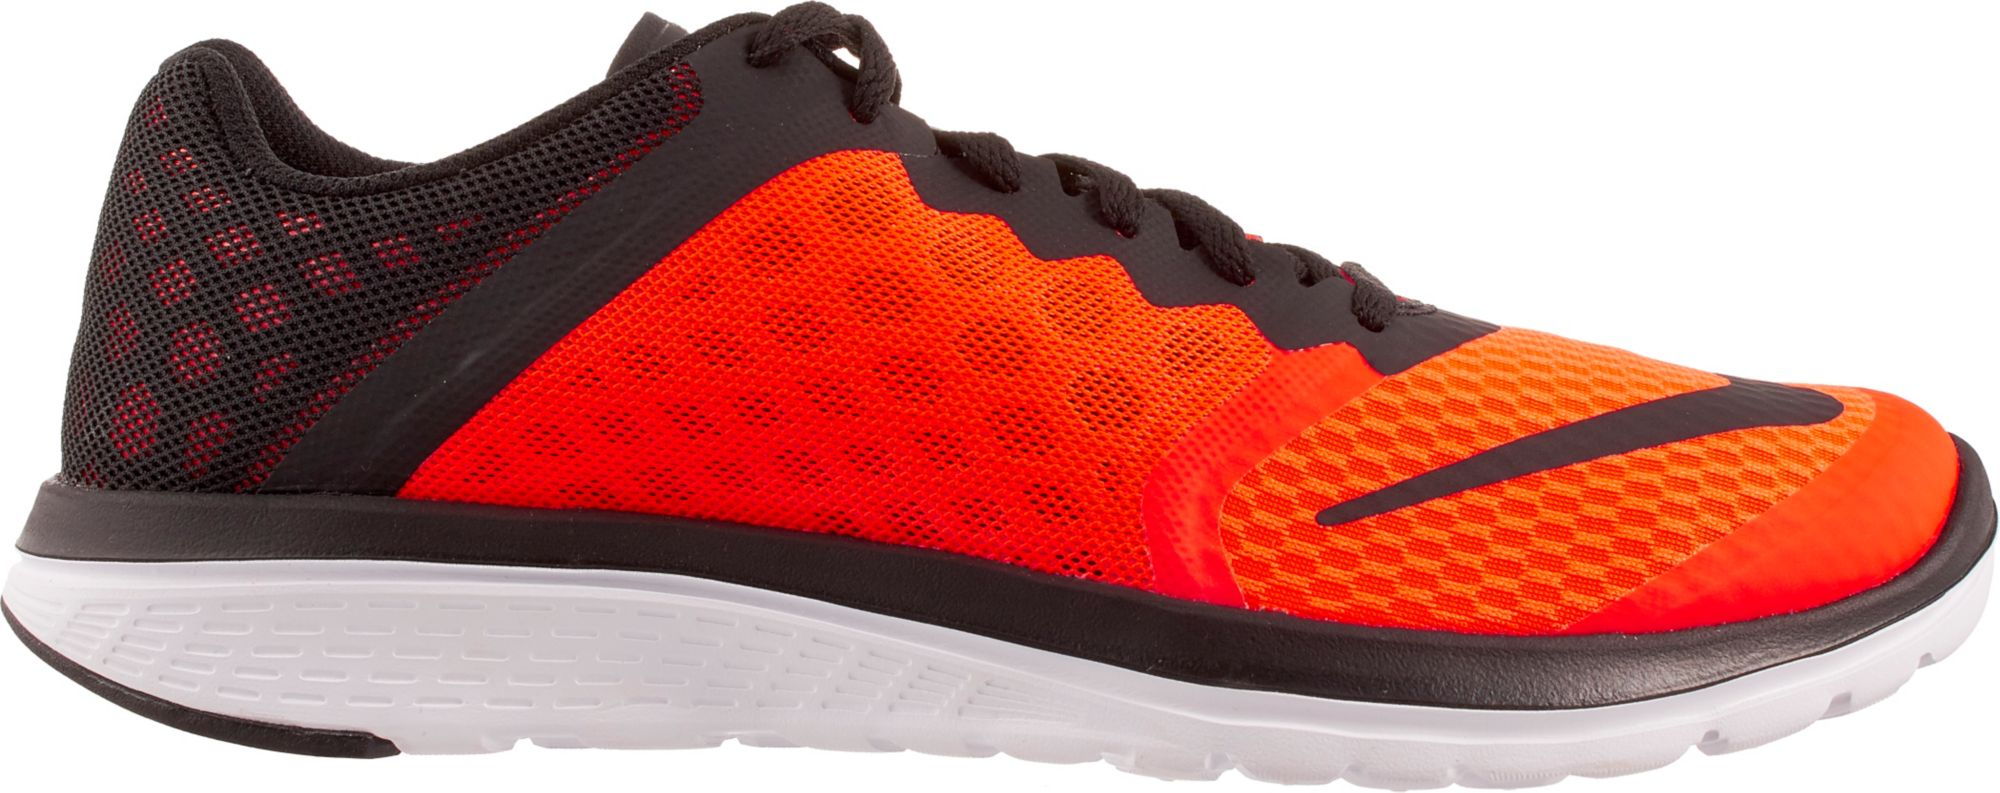 Nike FS Lite Run 3 Women's JD Sports